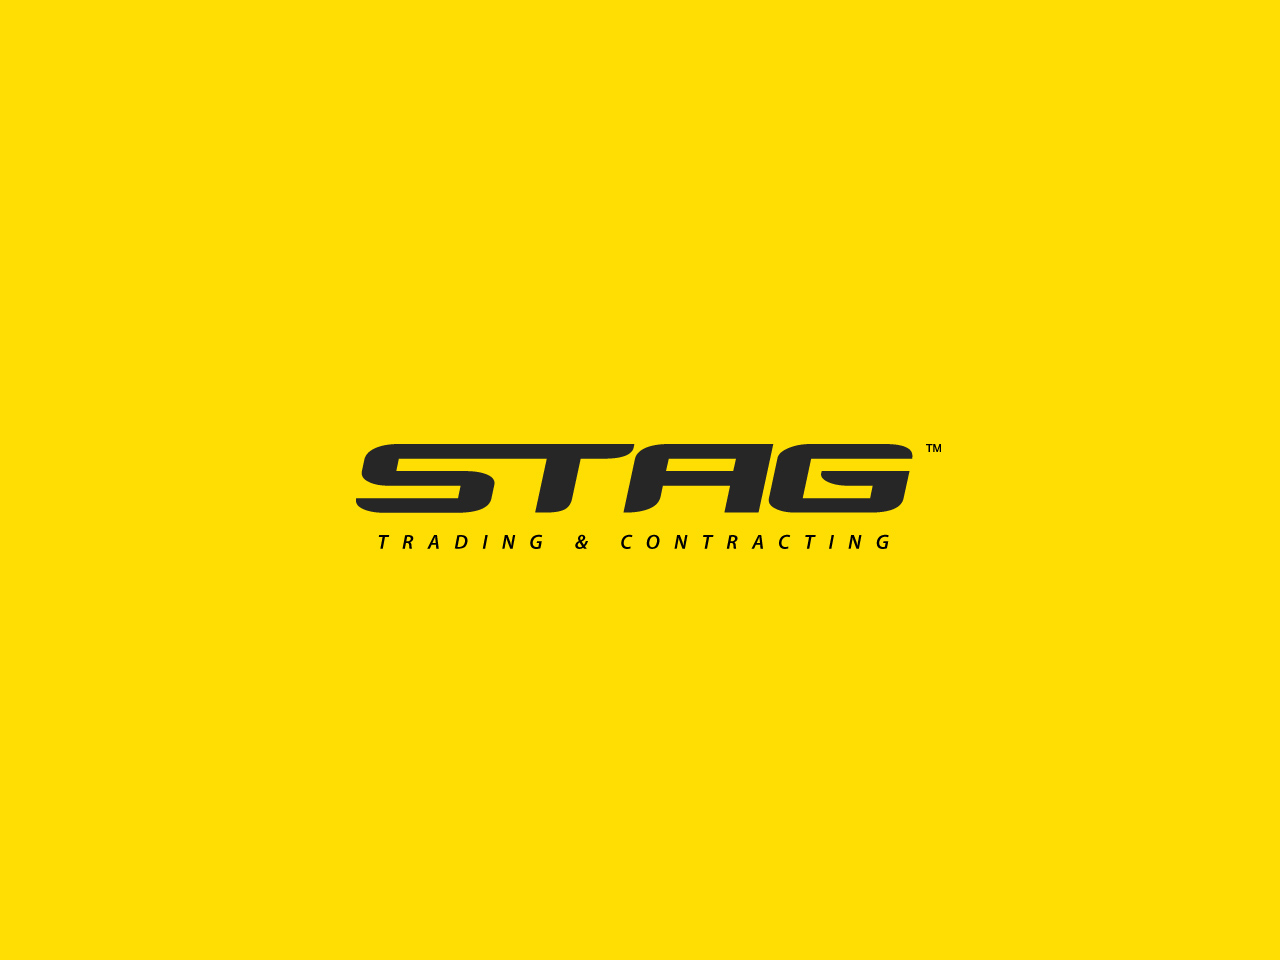 Logo Design by jpbituin - Entry No. 15 in the Logo Design Contest Captivating Logo Design for STAG Trading & Contracting.